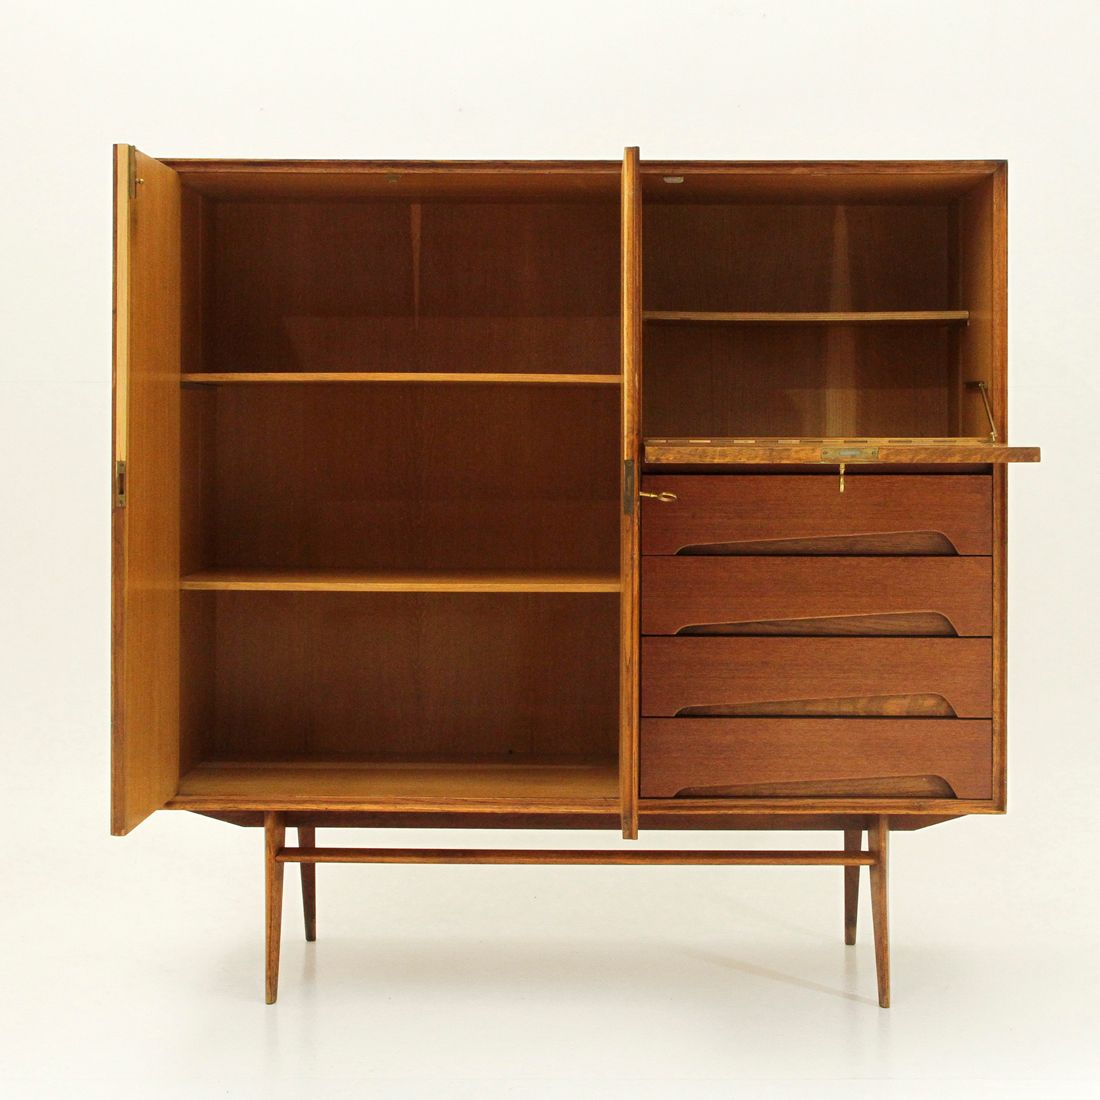 Italian highboard from dassi mobili moderni 1950s for for Mobili italy